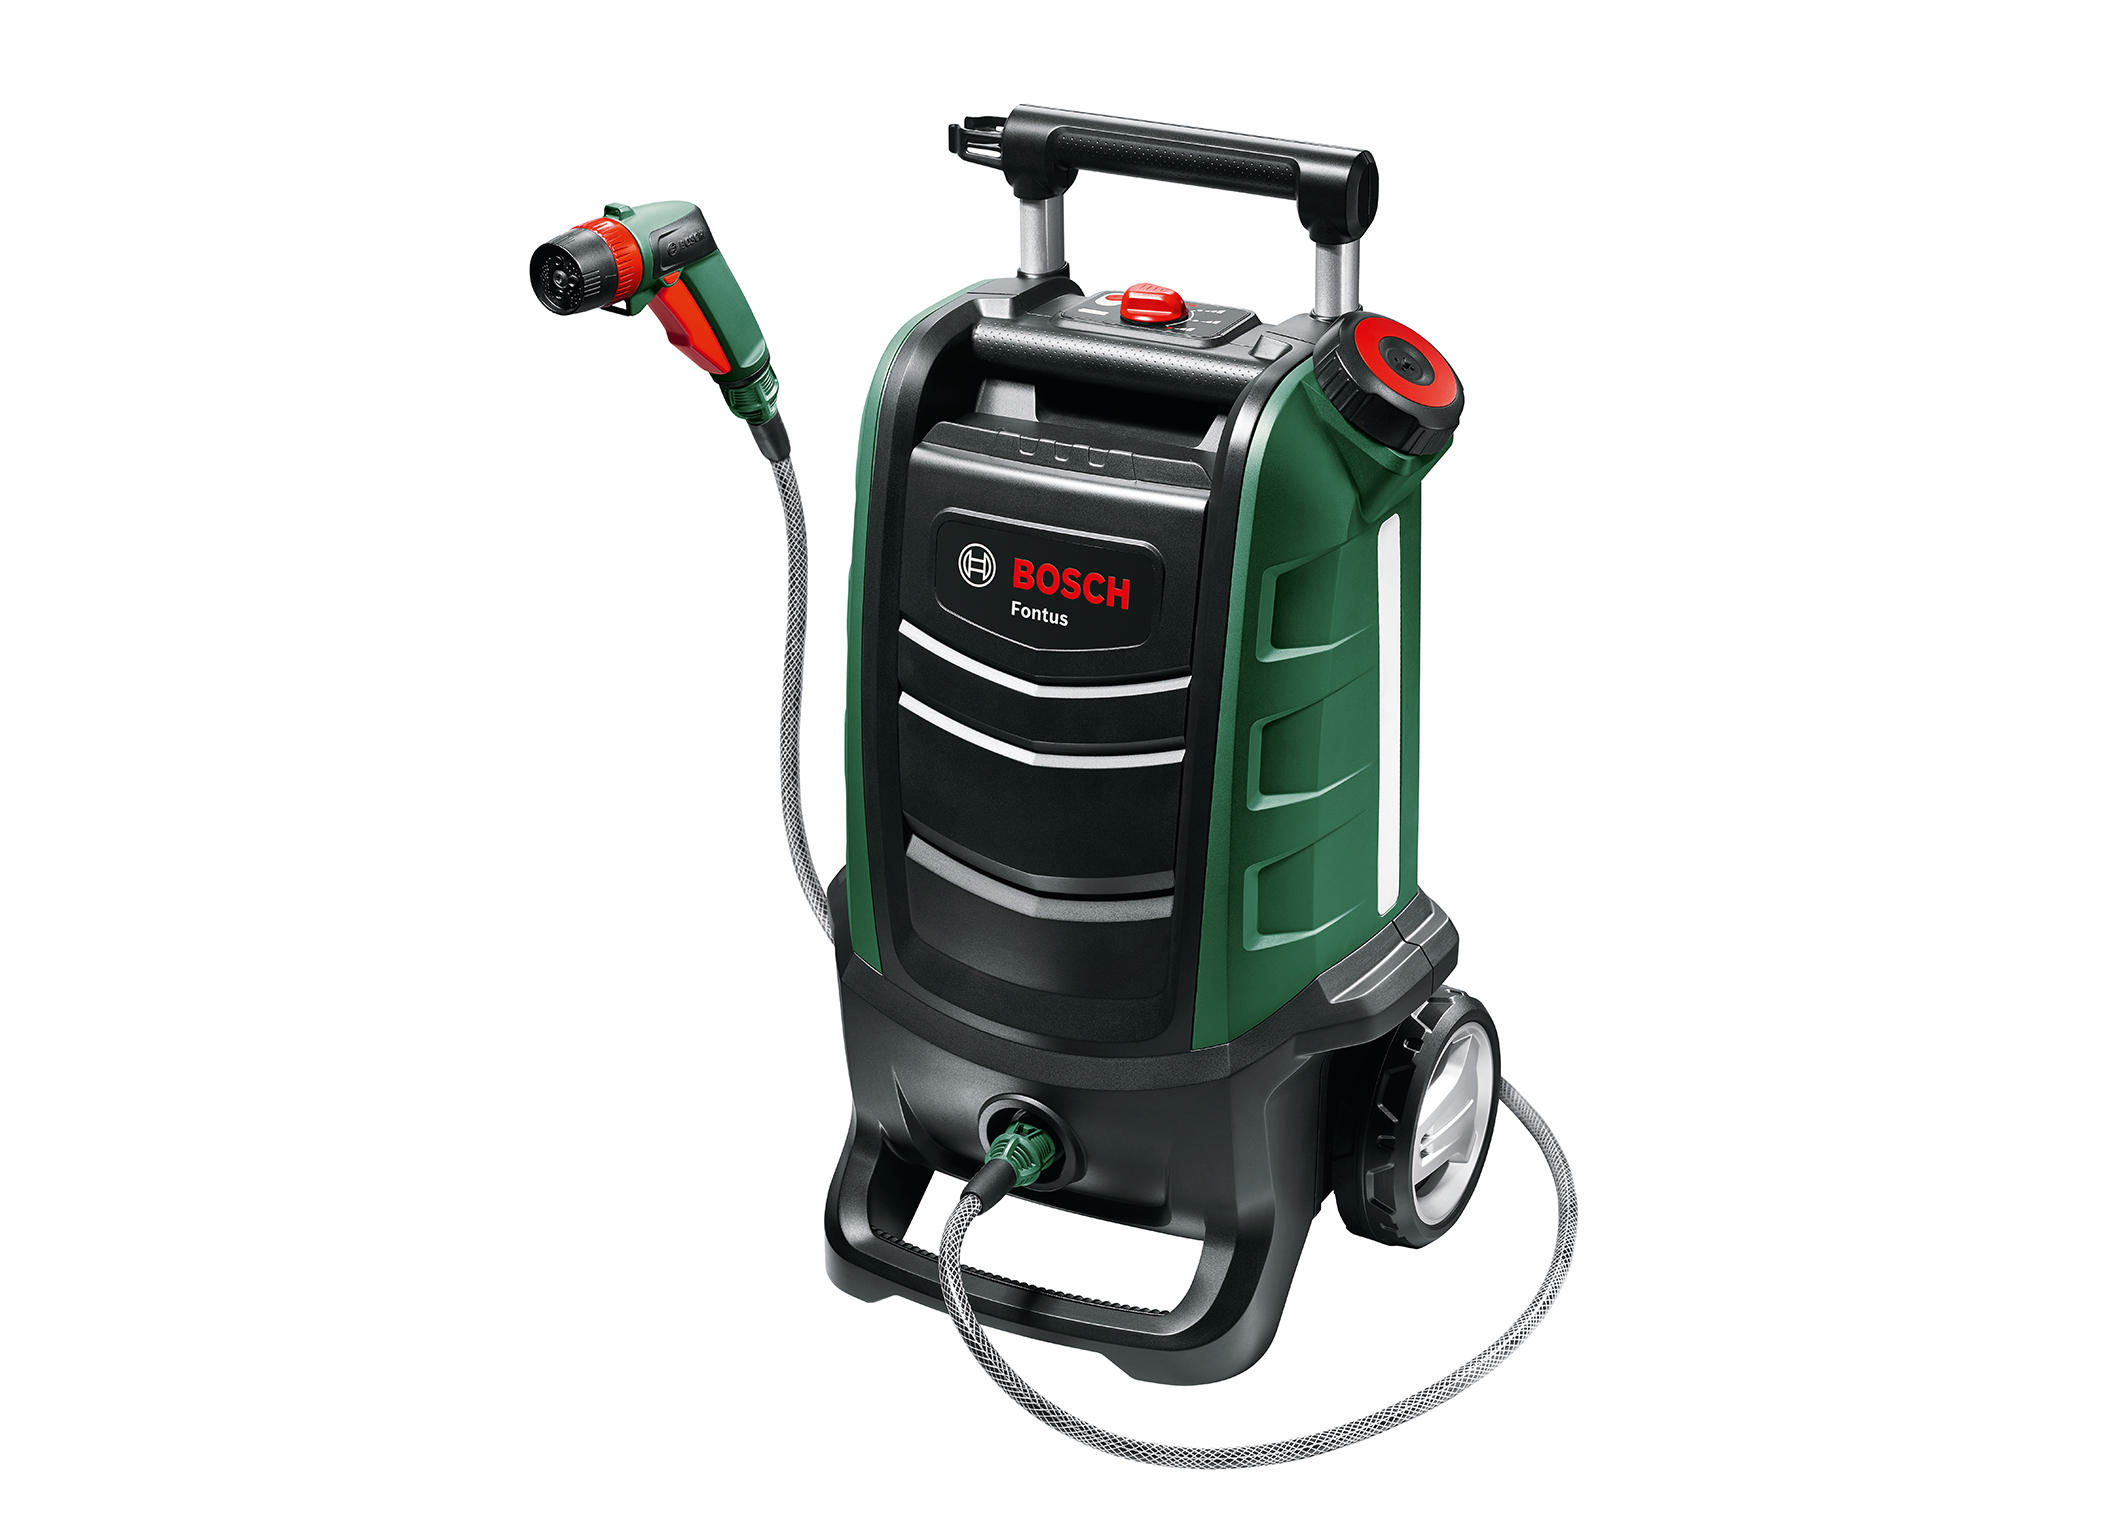 Easy cleaning without power and water supply: Fontus cordless low-pressure cleaner from Bosch